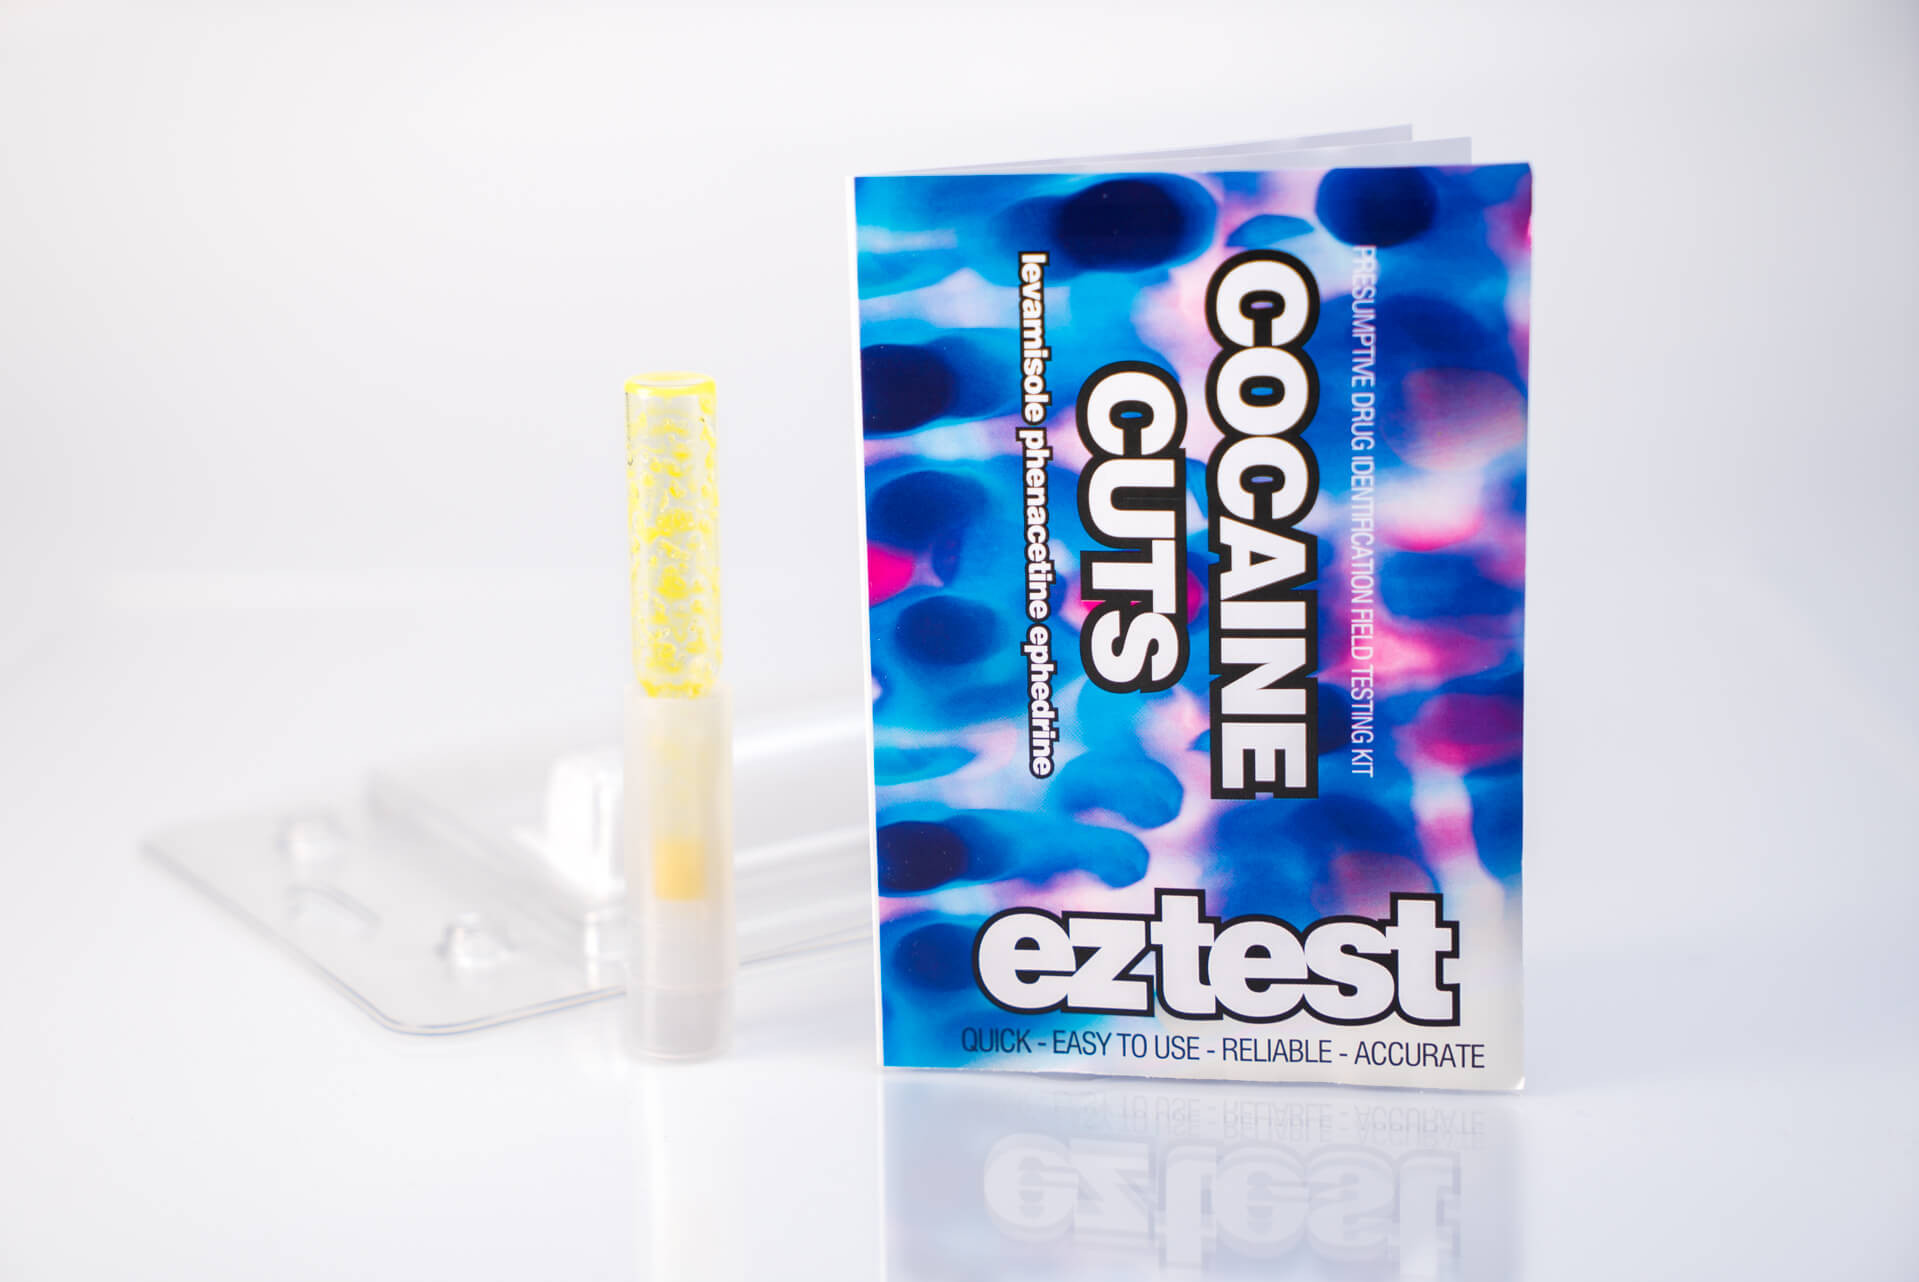 Cocaine Cuts Single Use Drug Testing Kit